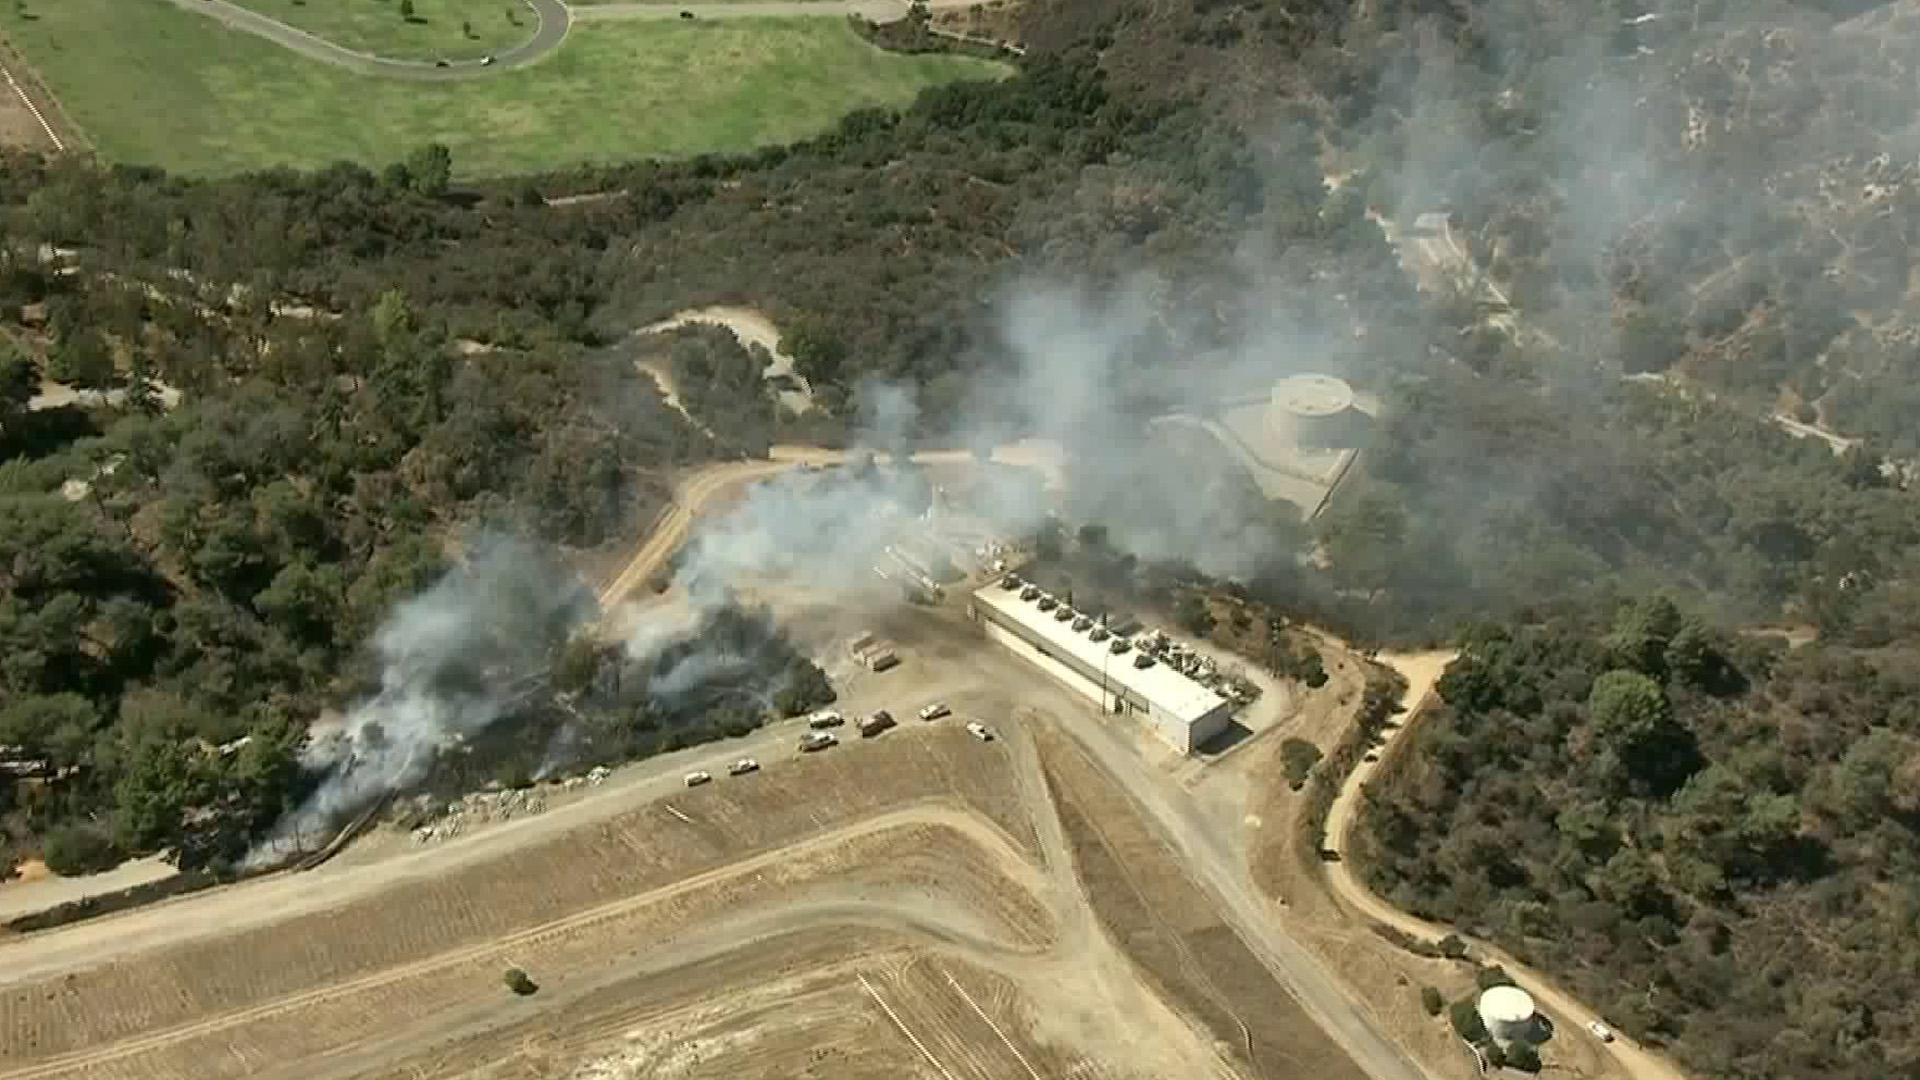 Crews respond to a brush fire in Griffith Park on Sept. 17, 2018. (Credit: KTLA)